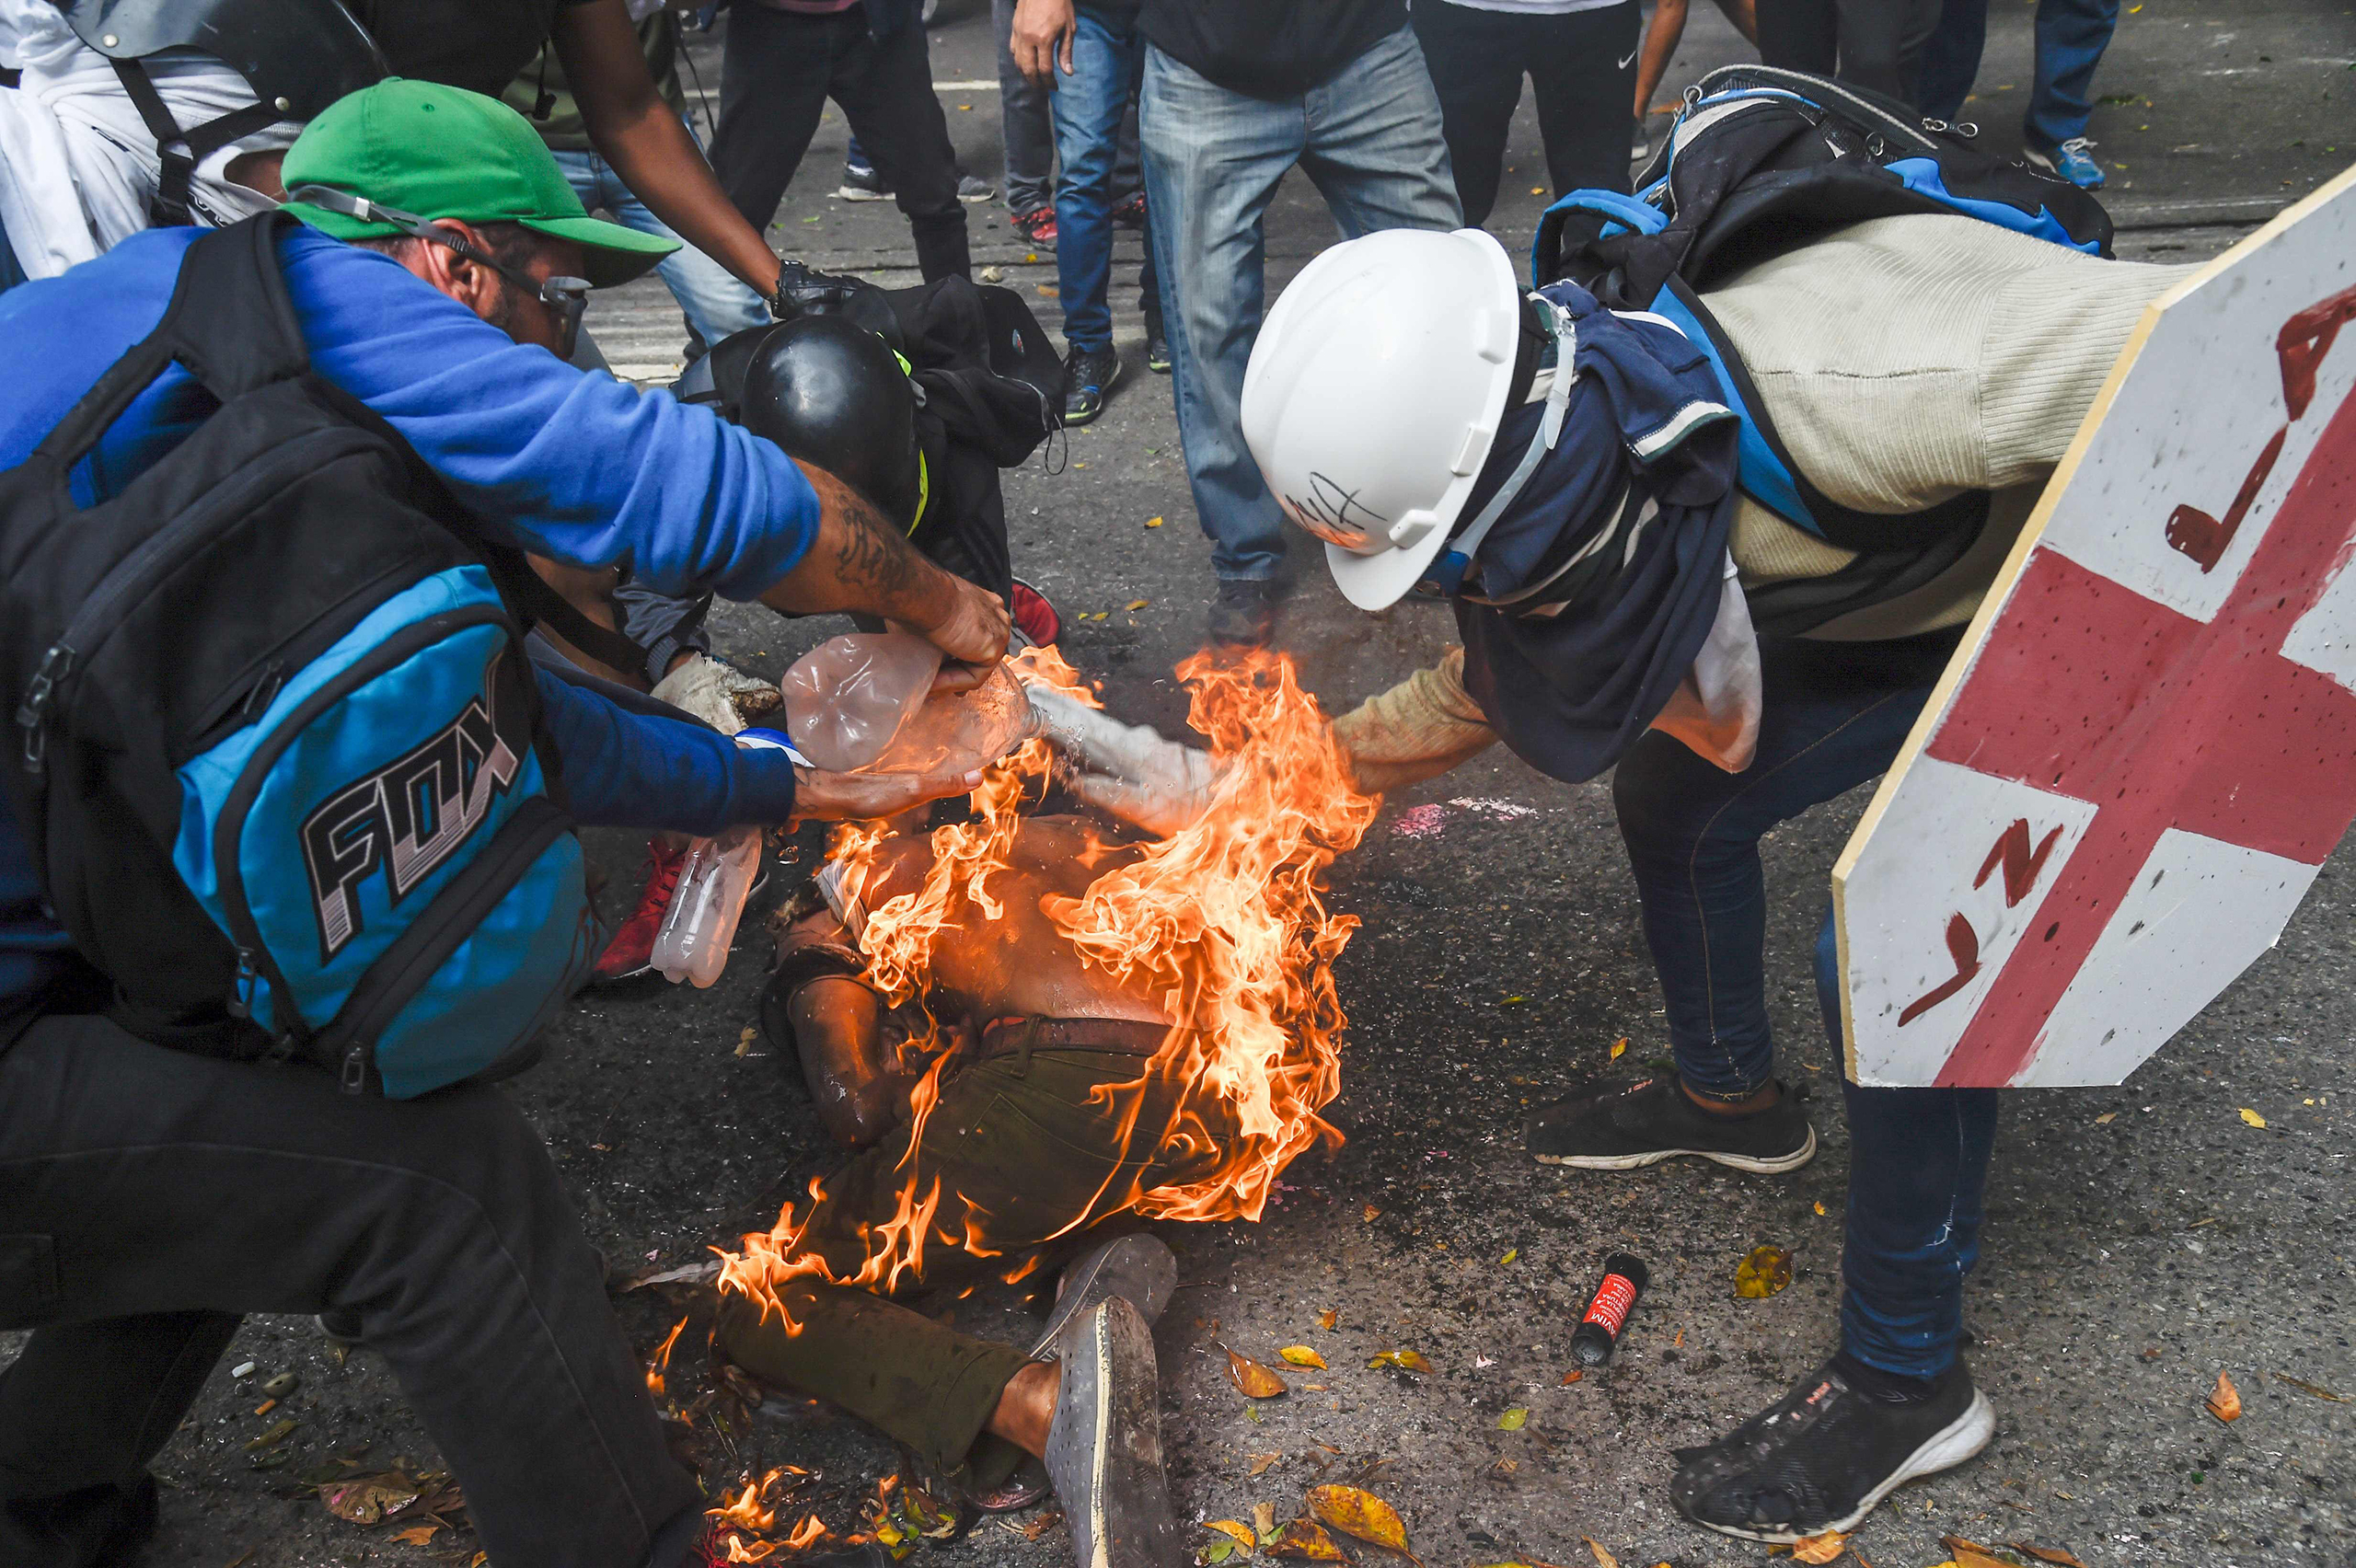 Men aid a demonstrator who caught fire during clashes in Caracas on May 3, 2017.